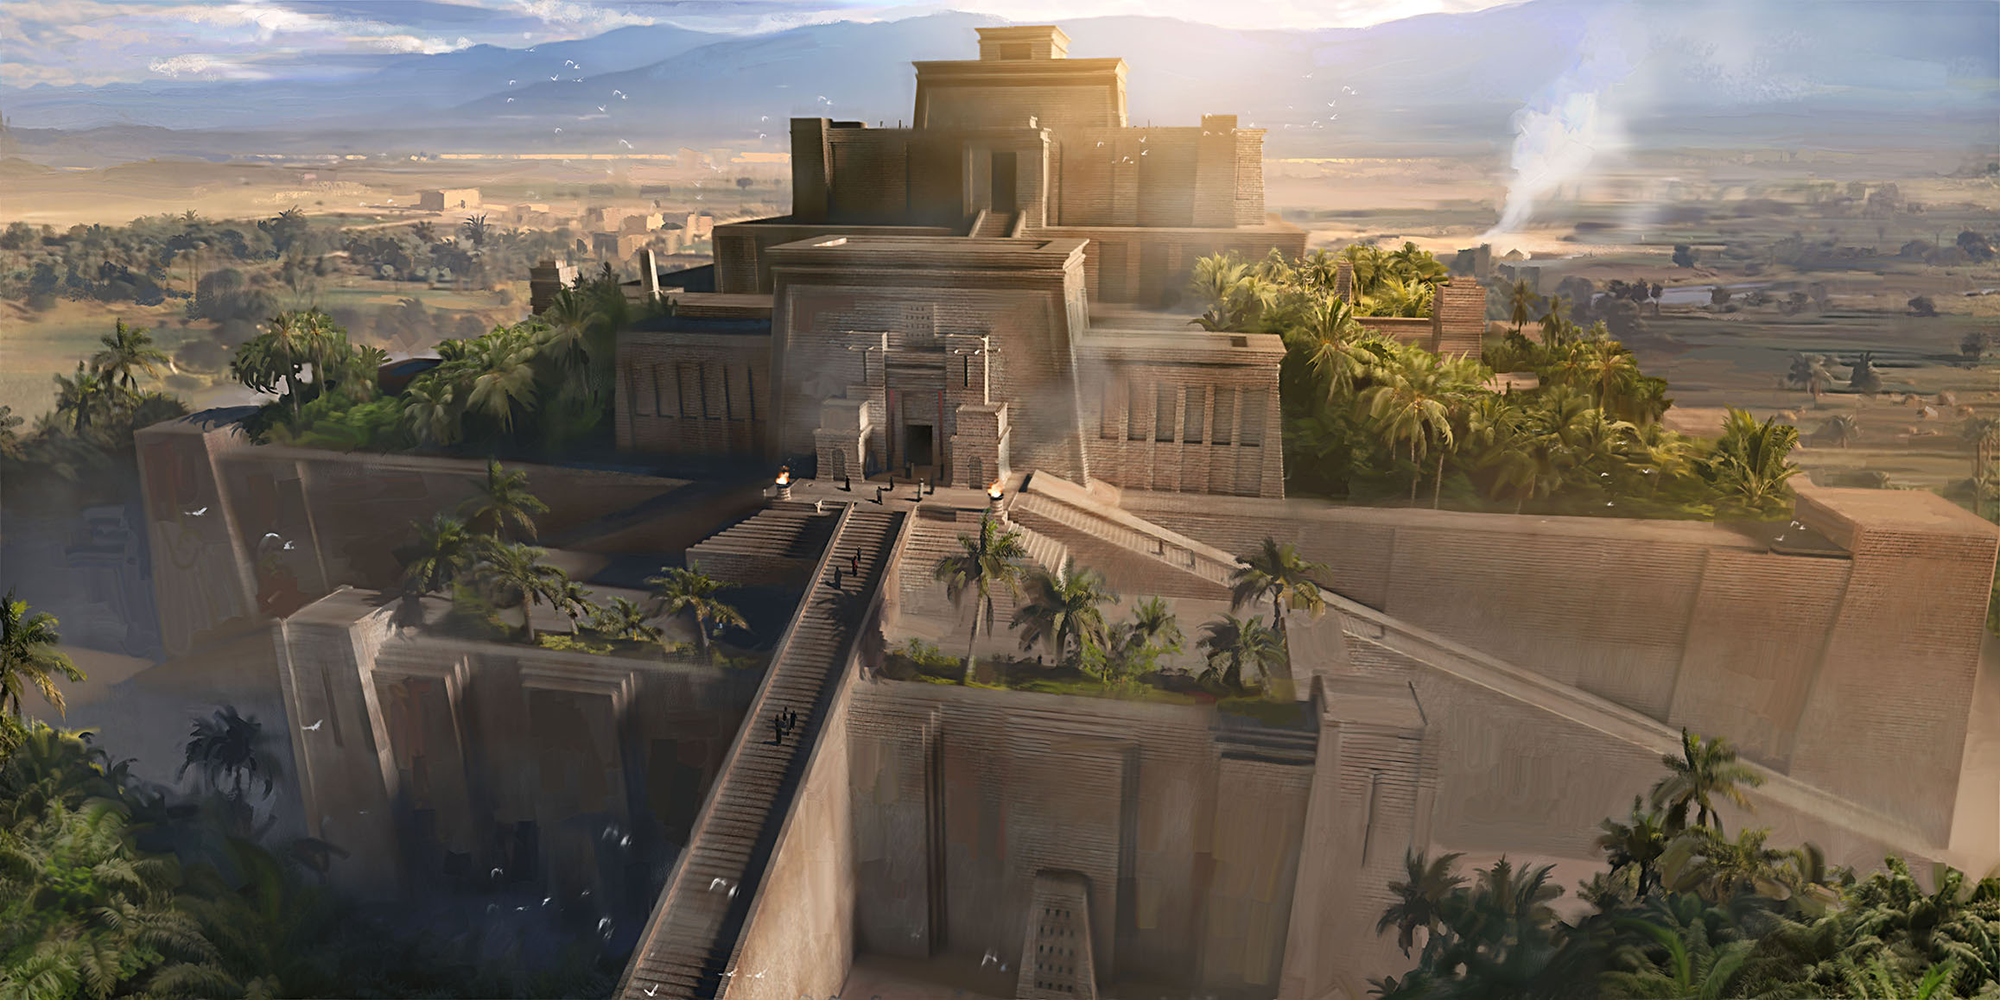 Ziggurat of Ur (Artist's Impression) (Illustration) - Ancient History Encyclopedia